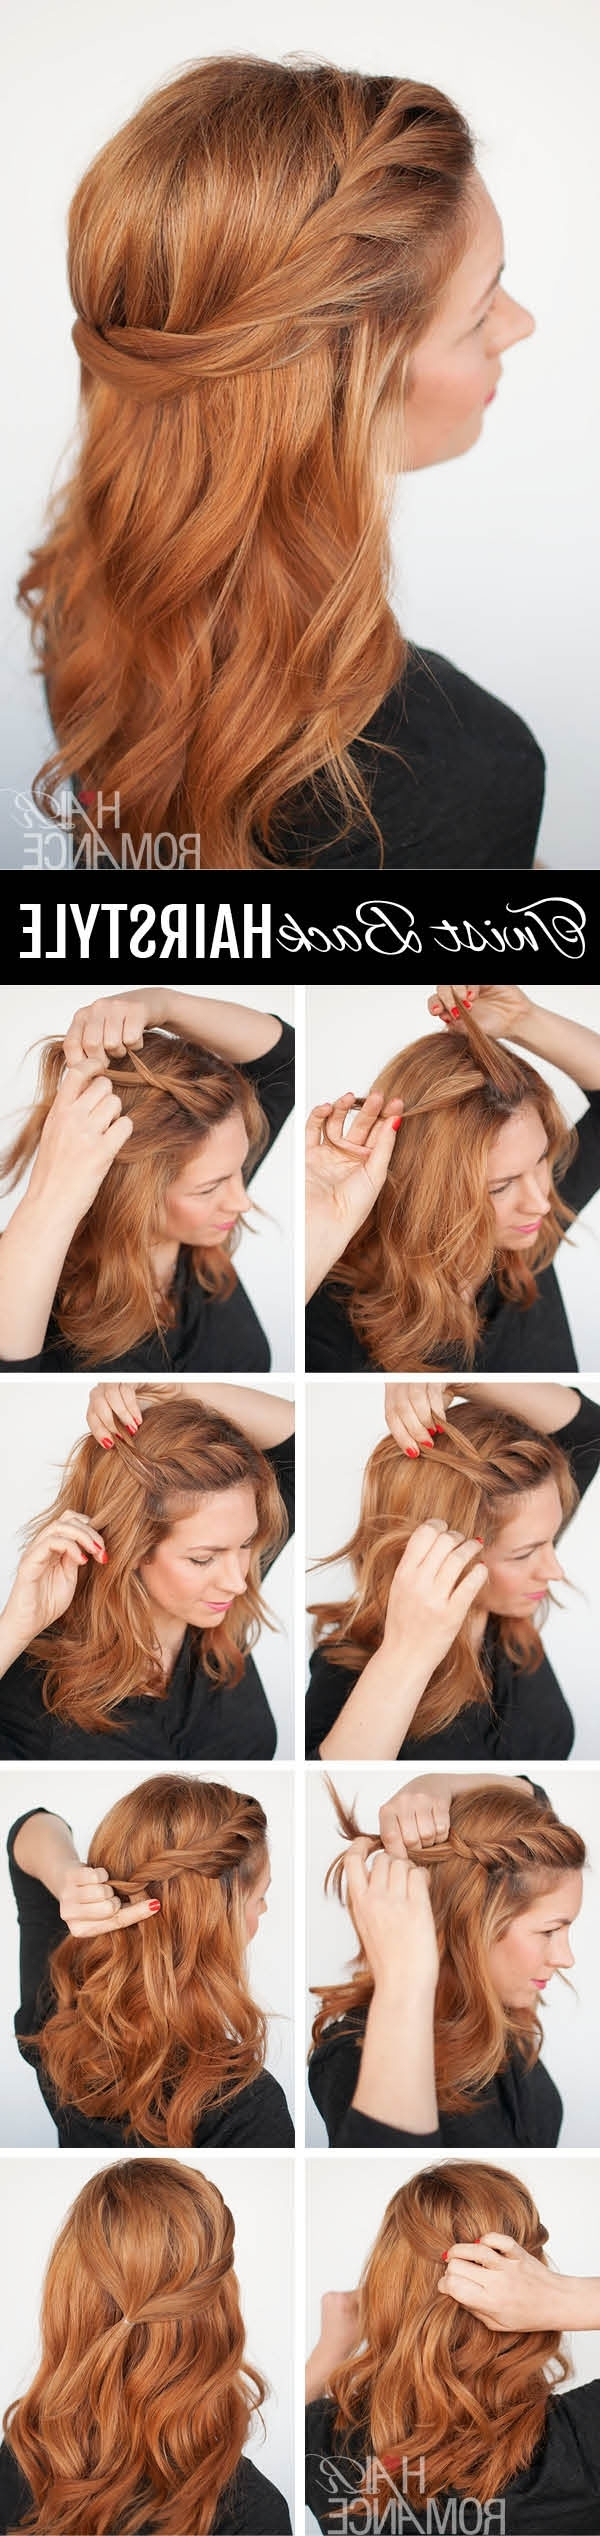 The Twist Back – Easy Half Up Hairstyle Tutorial – Hair Romance Within Favorite Romantic Twisted Hairdo Hairstyles (View 16 of 20)